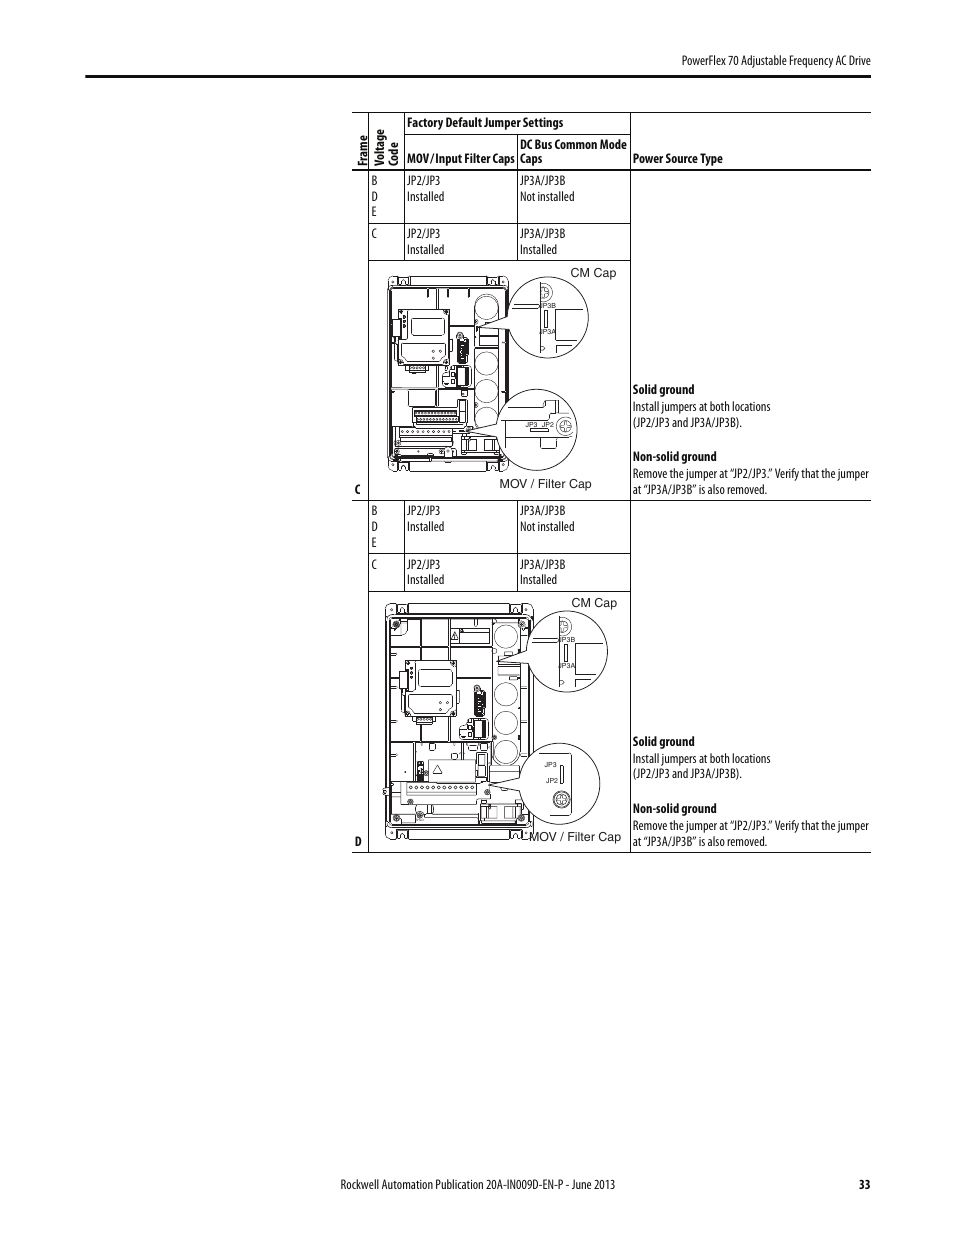 Rockwell Automation 20a Powerflex 70 Adjustable Frequency Ac Drive Filter Cap Schematic User Manual Page 33 56